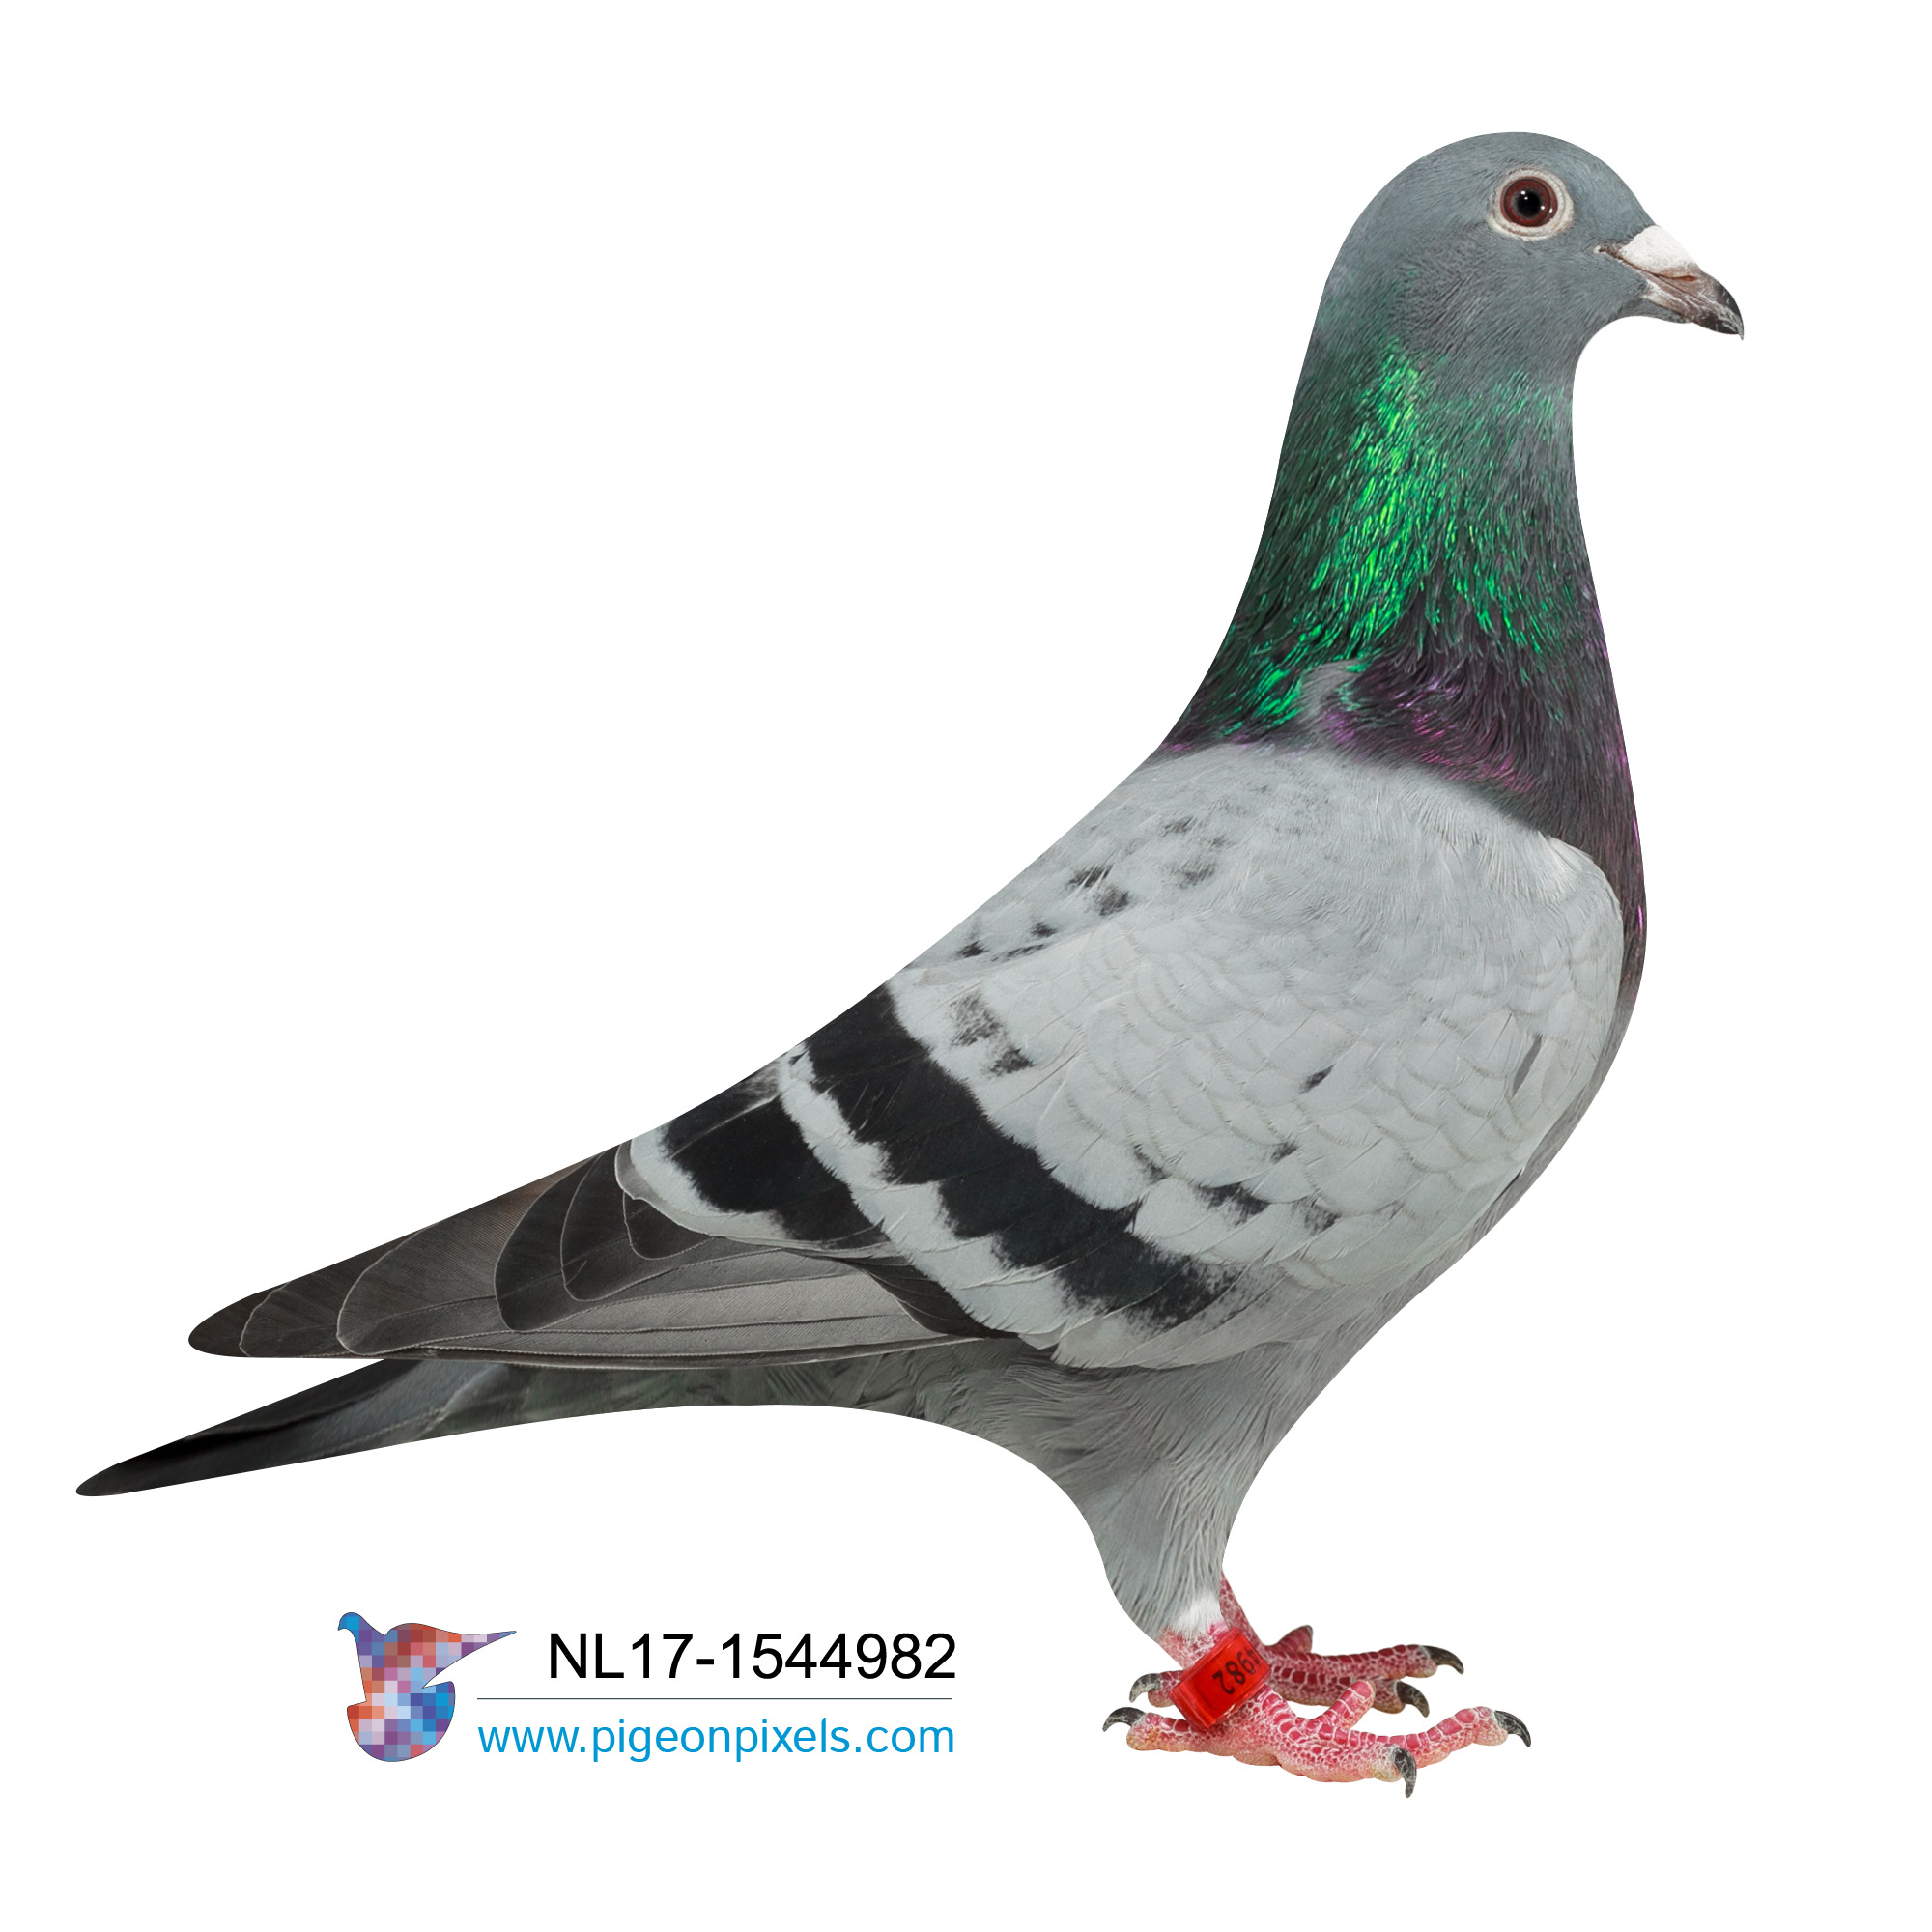 "NL2017-1544982 (GRANDDAUGHTER AND INBRED TO THE MOST FAMOUS PIGEON IN THE WORLD ""HARRY"" JAN HOOYMANS"